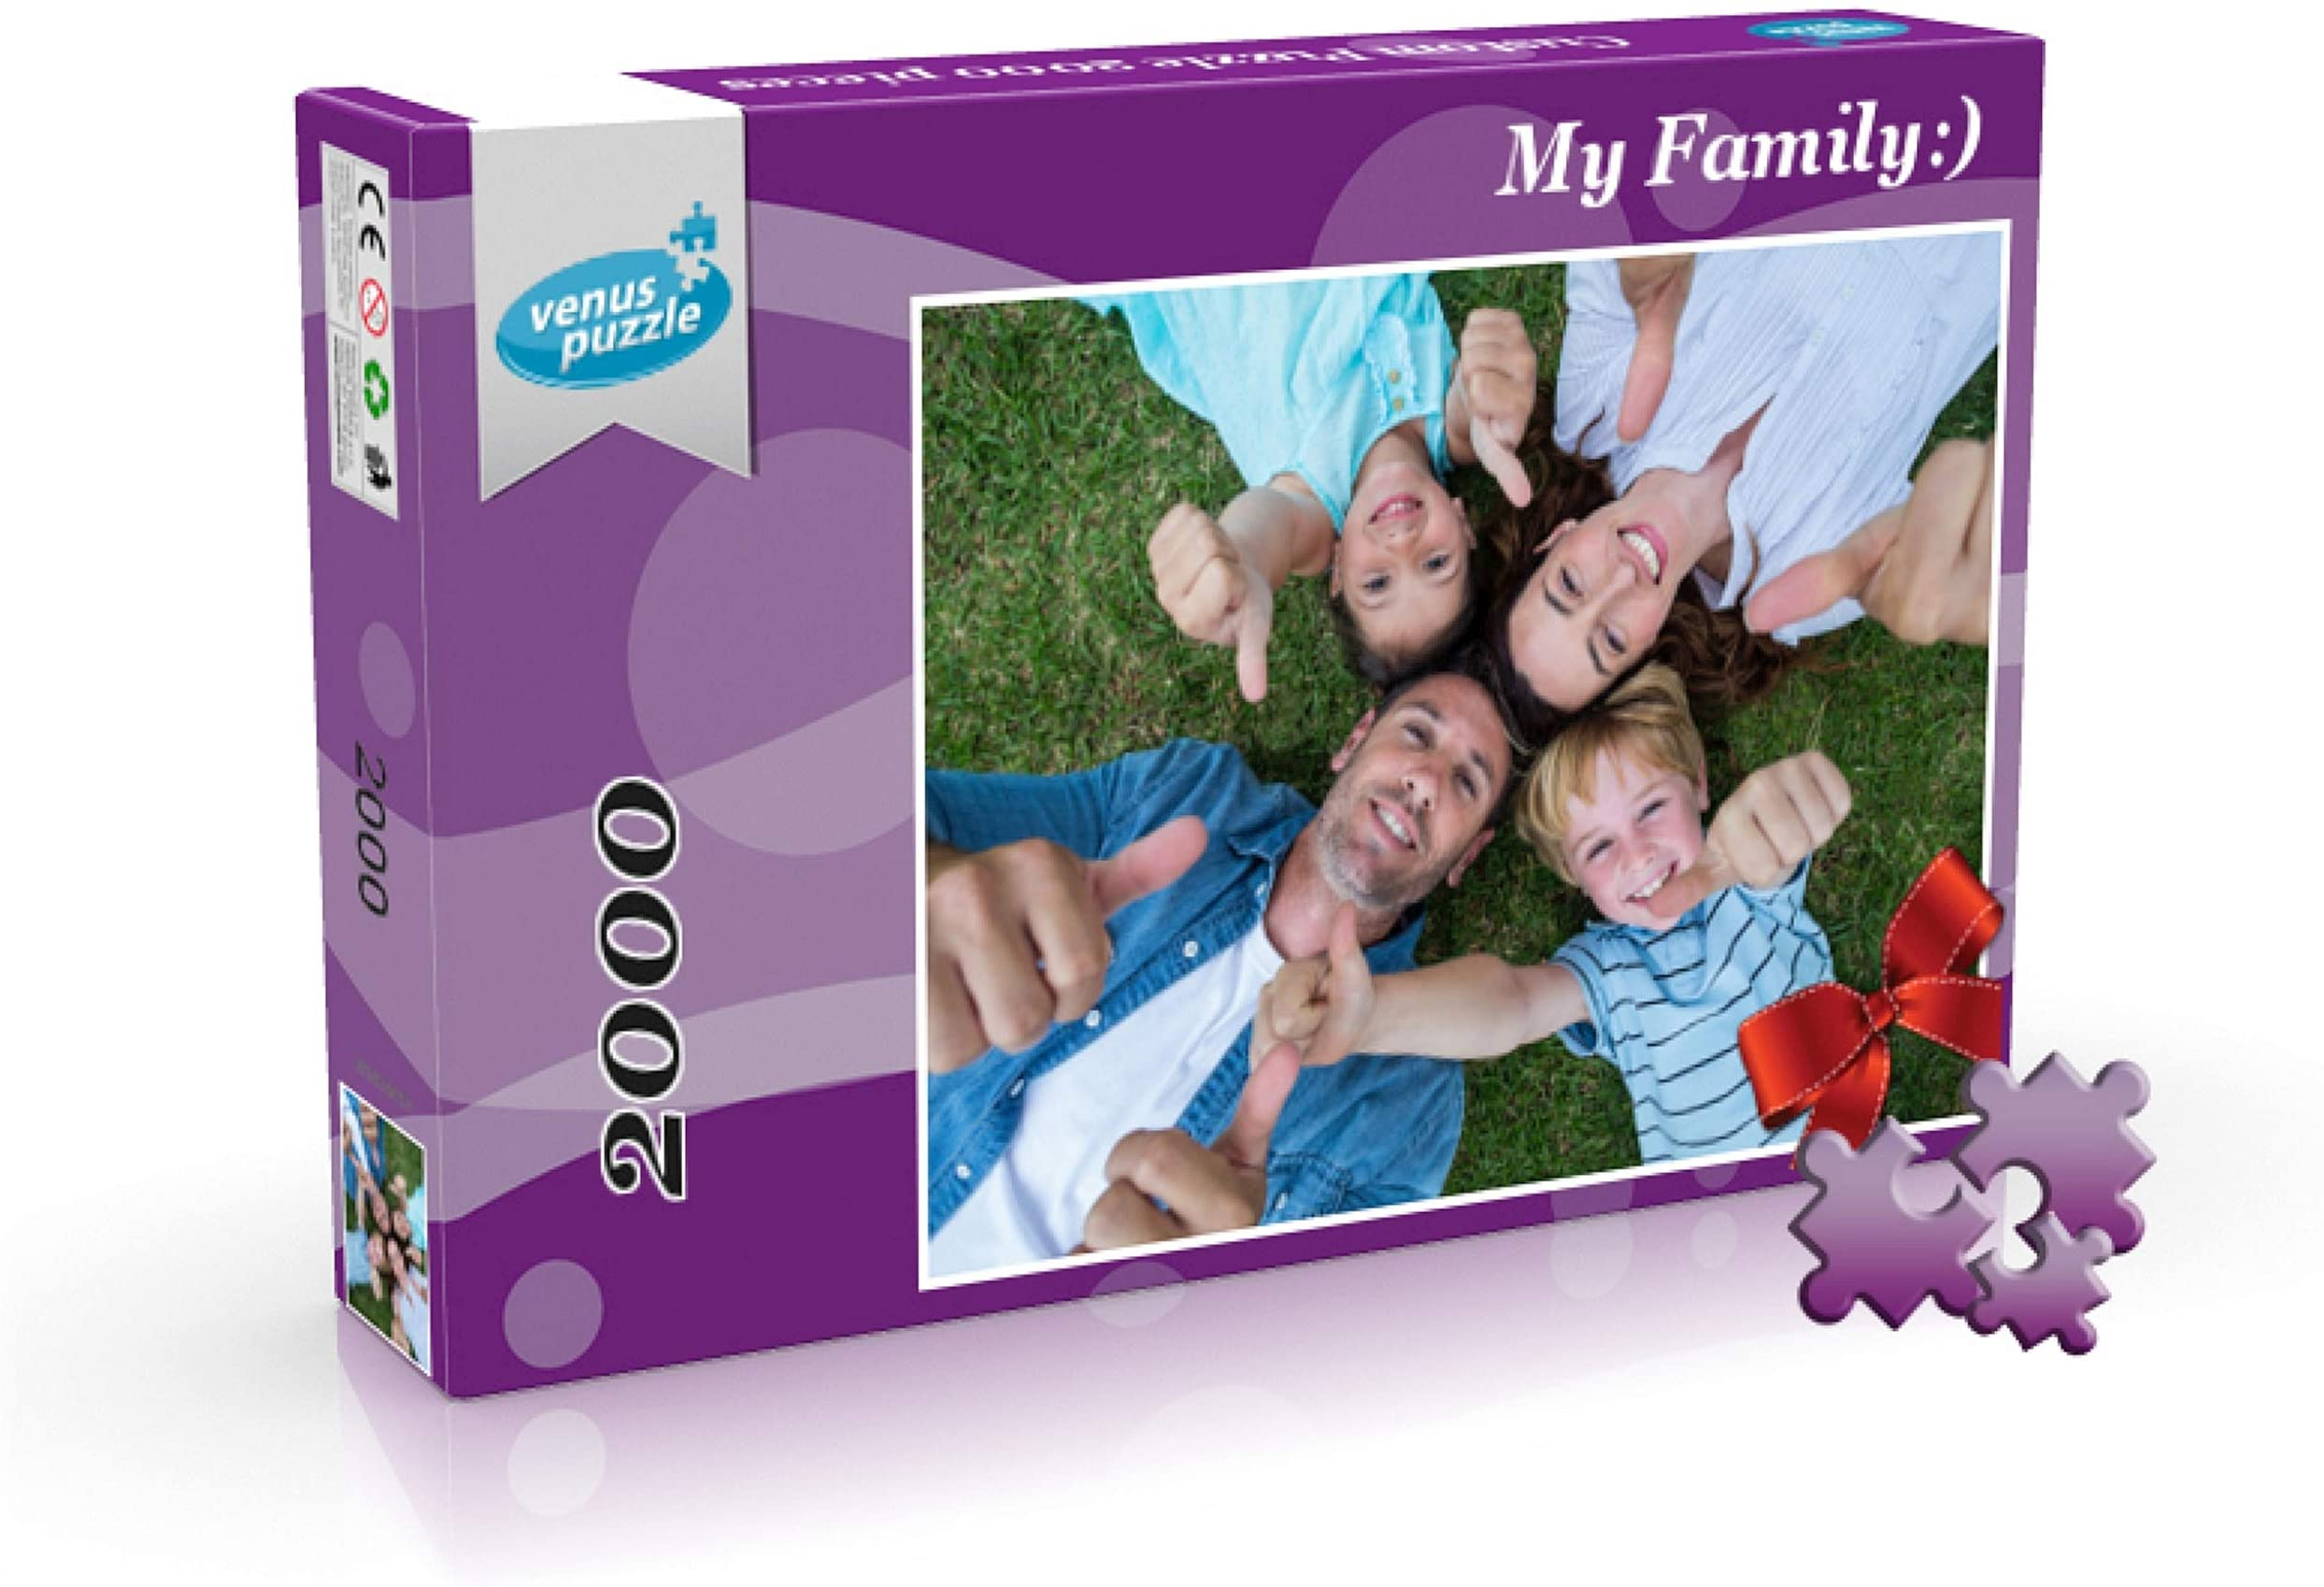 Personalized Puzzle featuring the name BEVERLY in photos of actual signs; Name puzzle; Children; Custom toy; Birthday gift; Jigsaw puzzle